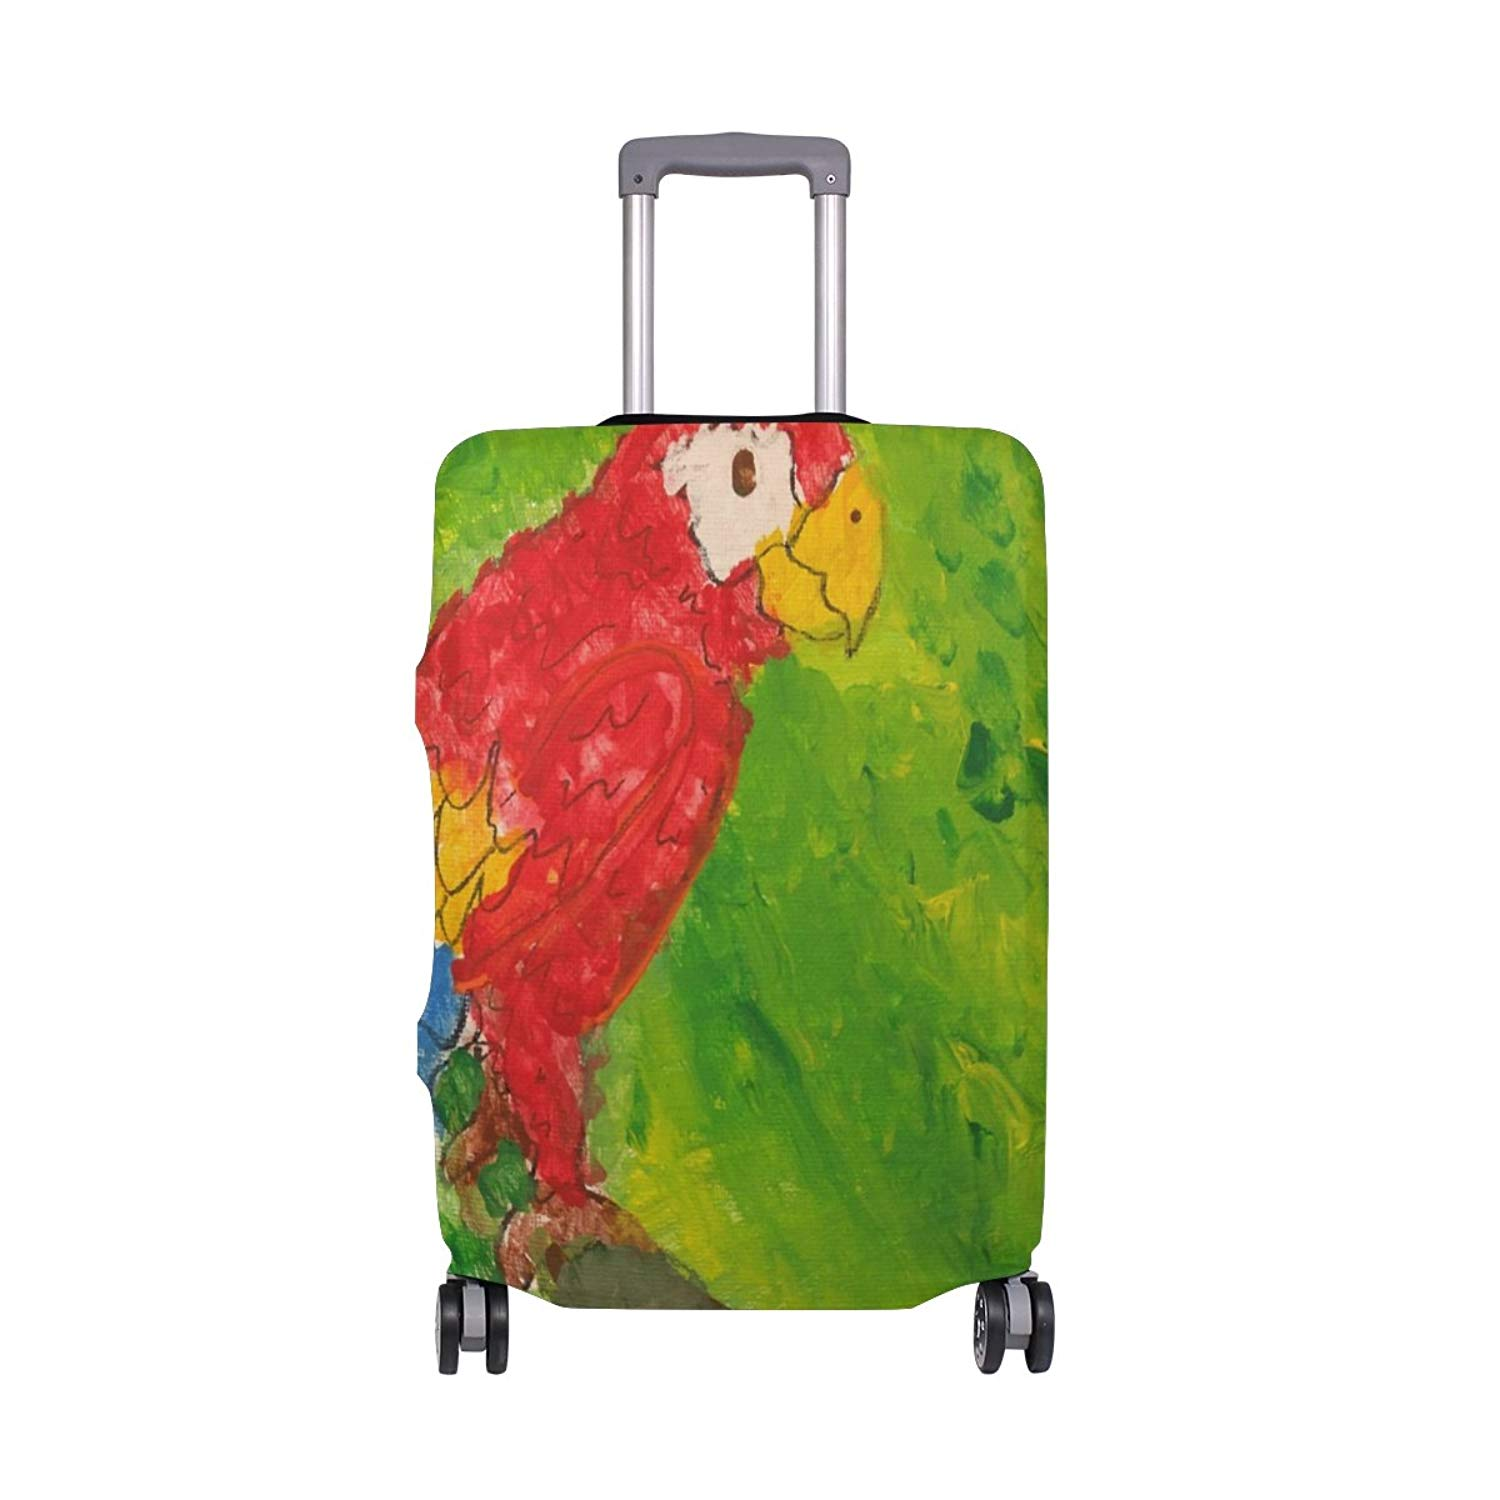 FOLPPLY Colorful Rainbow Tree Luggage Cover Baggage Suitcase Travel Protector Fit for 18-32 Inch